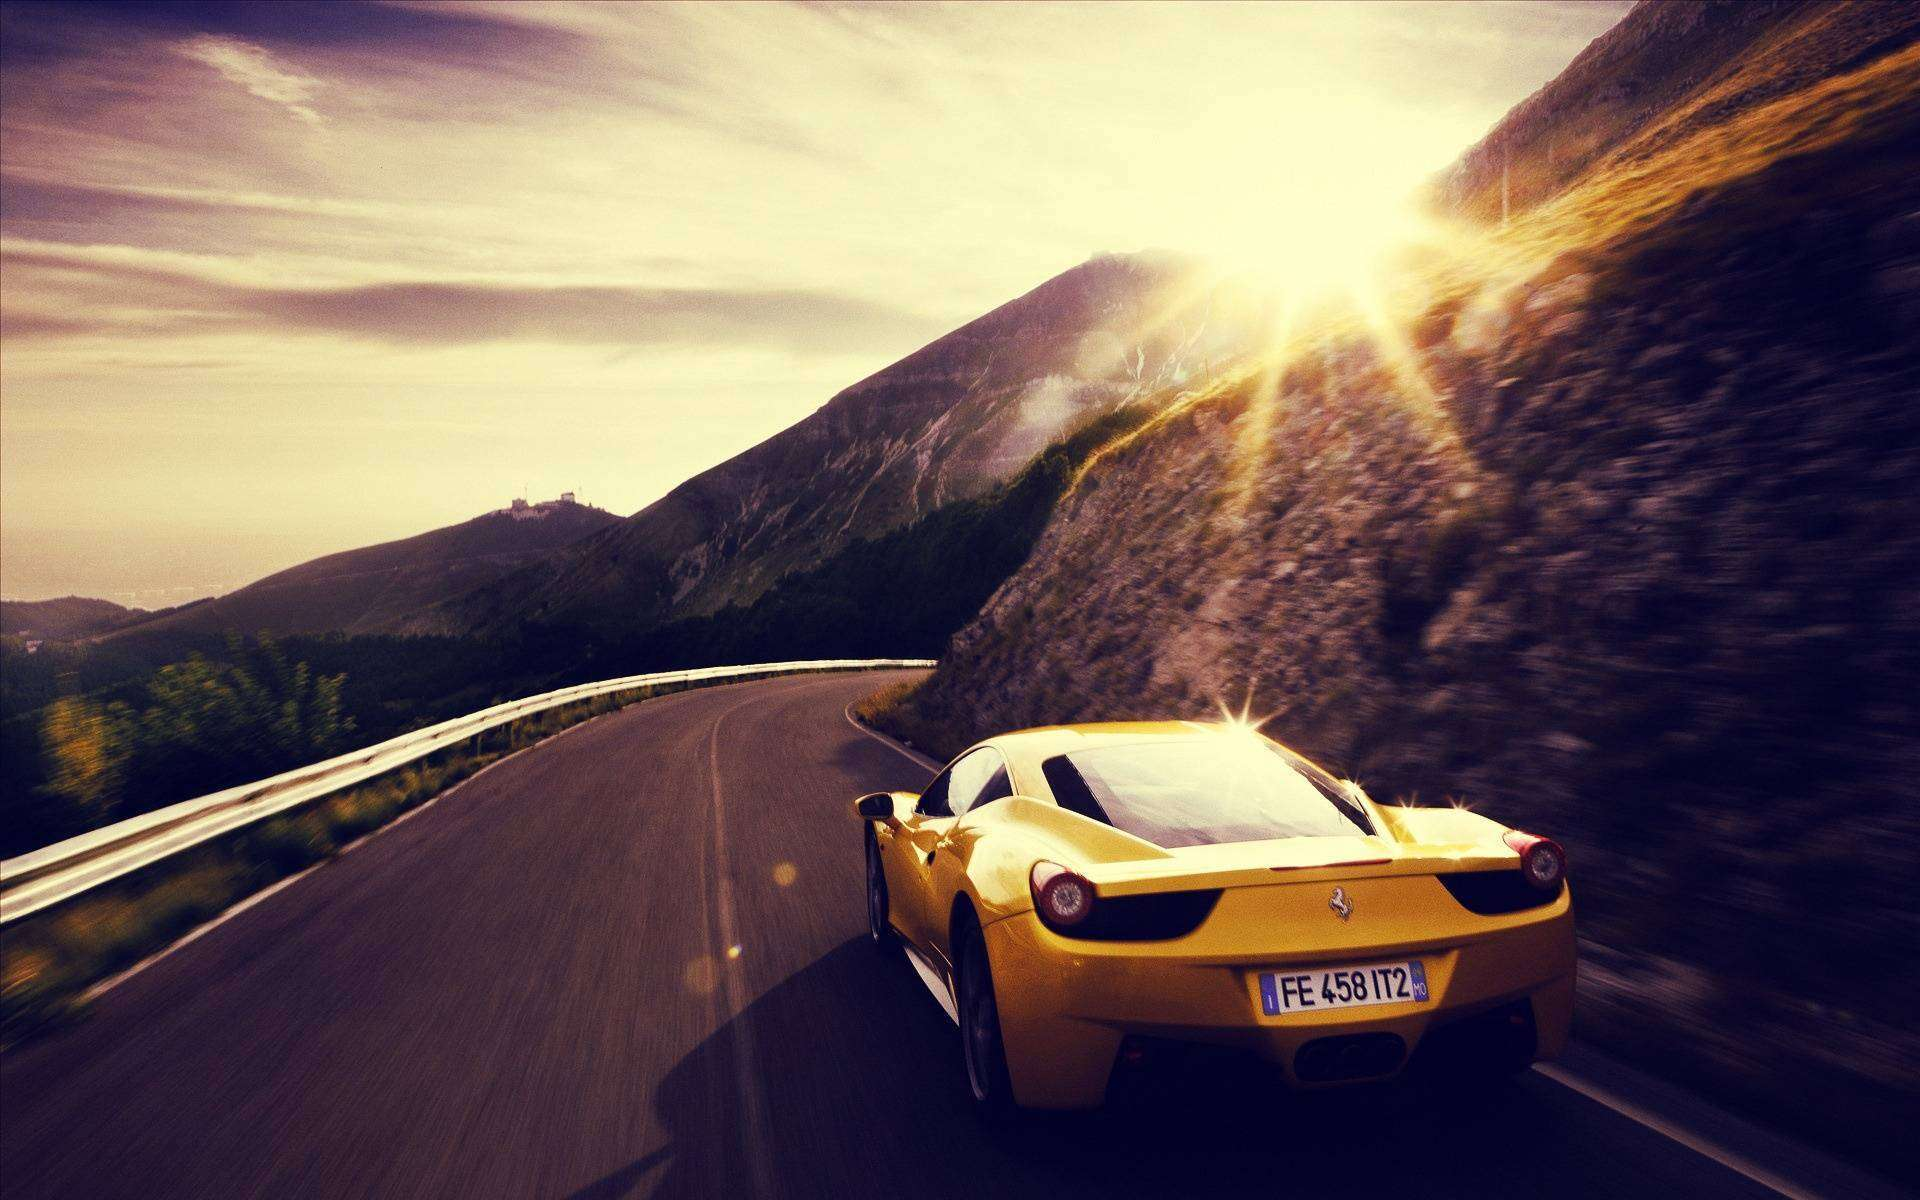 FunMozar – Yellow Ferrari Wallpapers